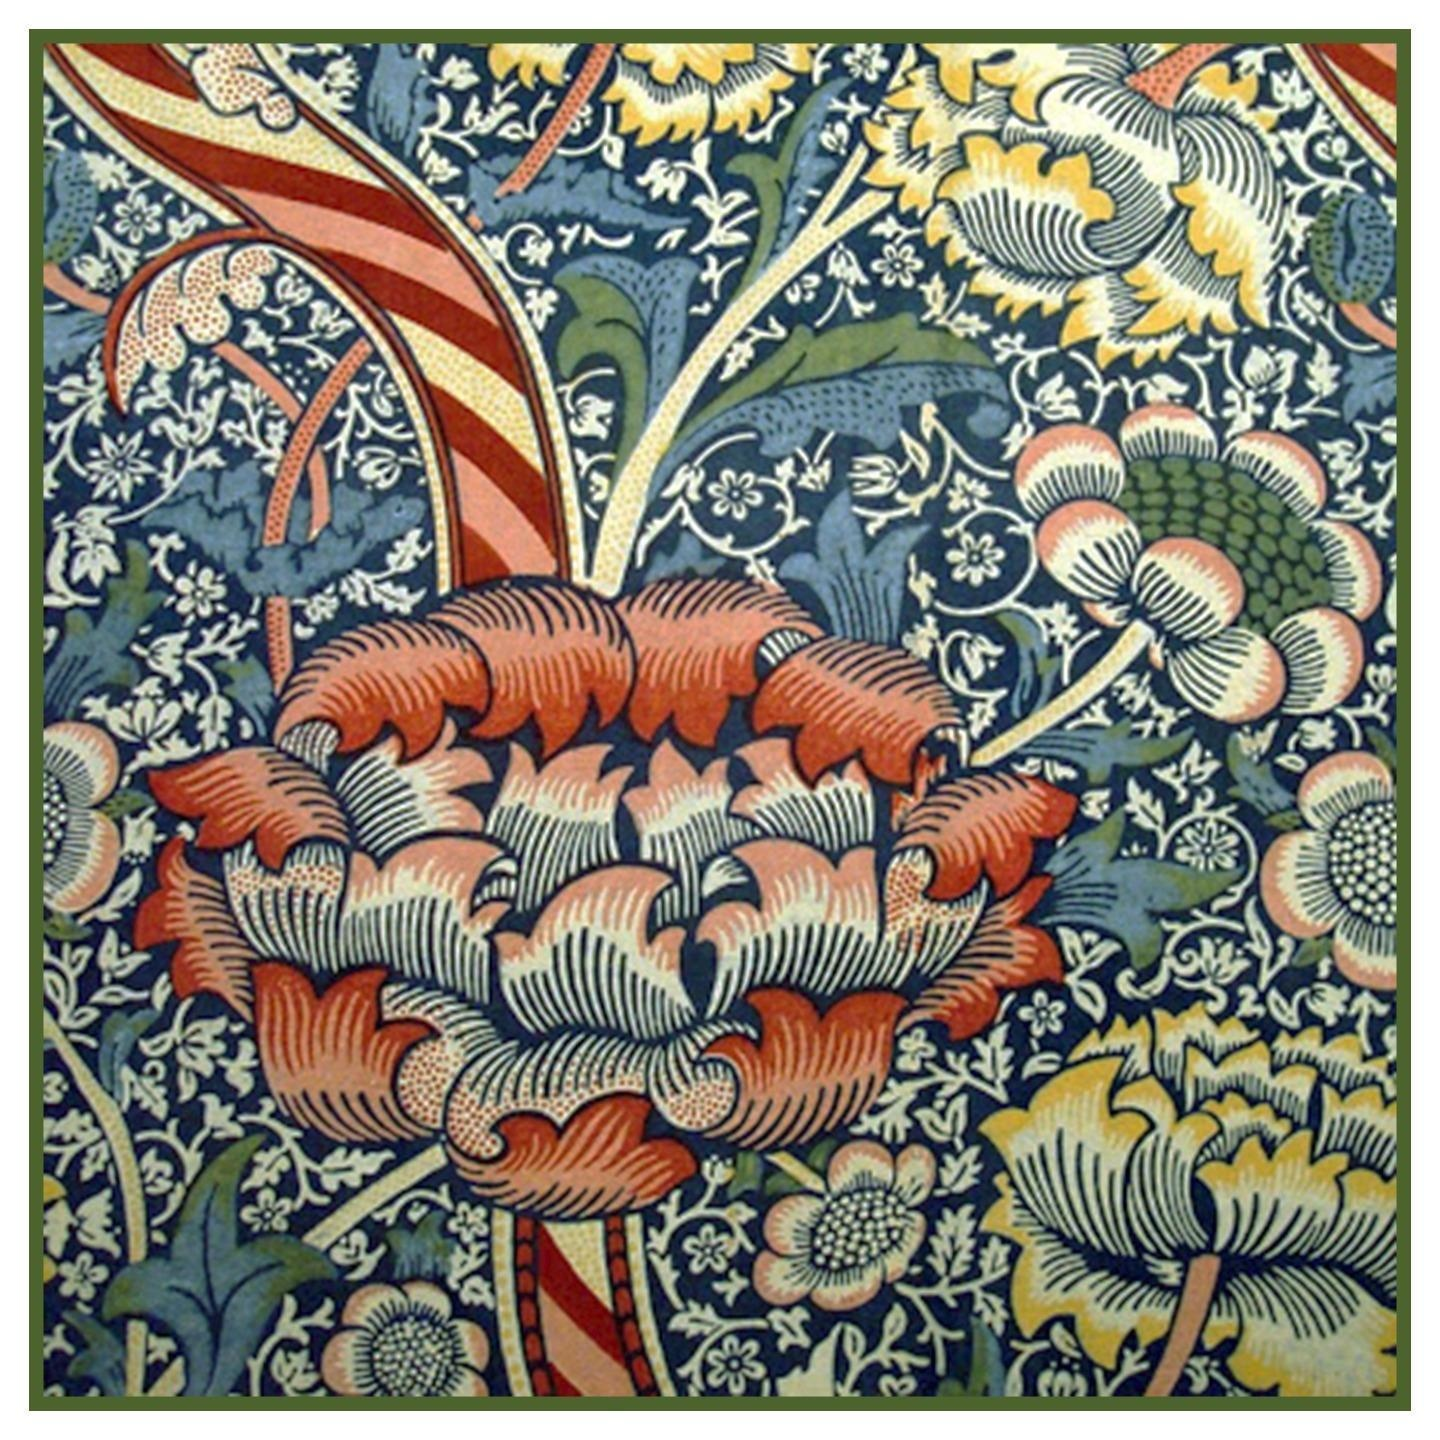 Arts and Crafts Snakeshead Blues by William Morris Counted Cross Stitch Pattern